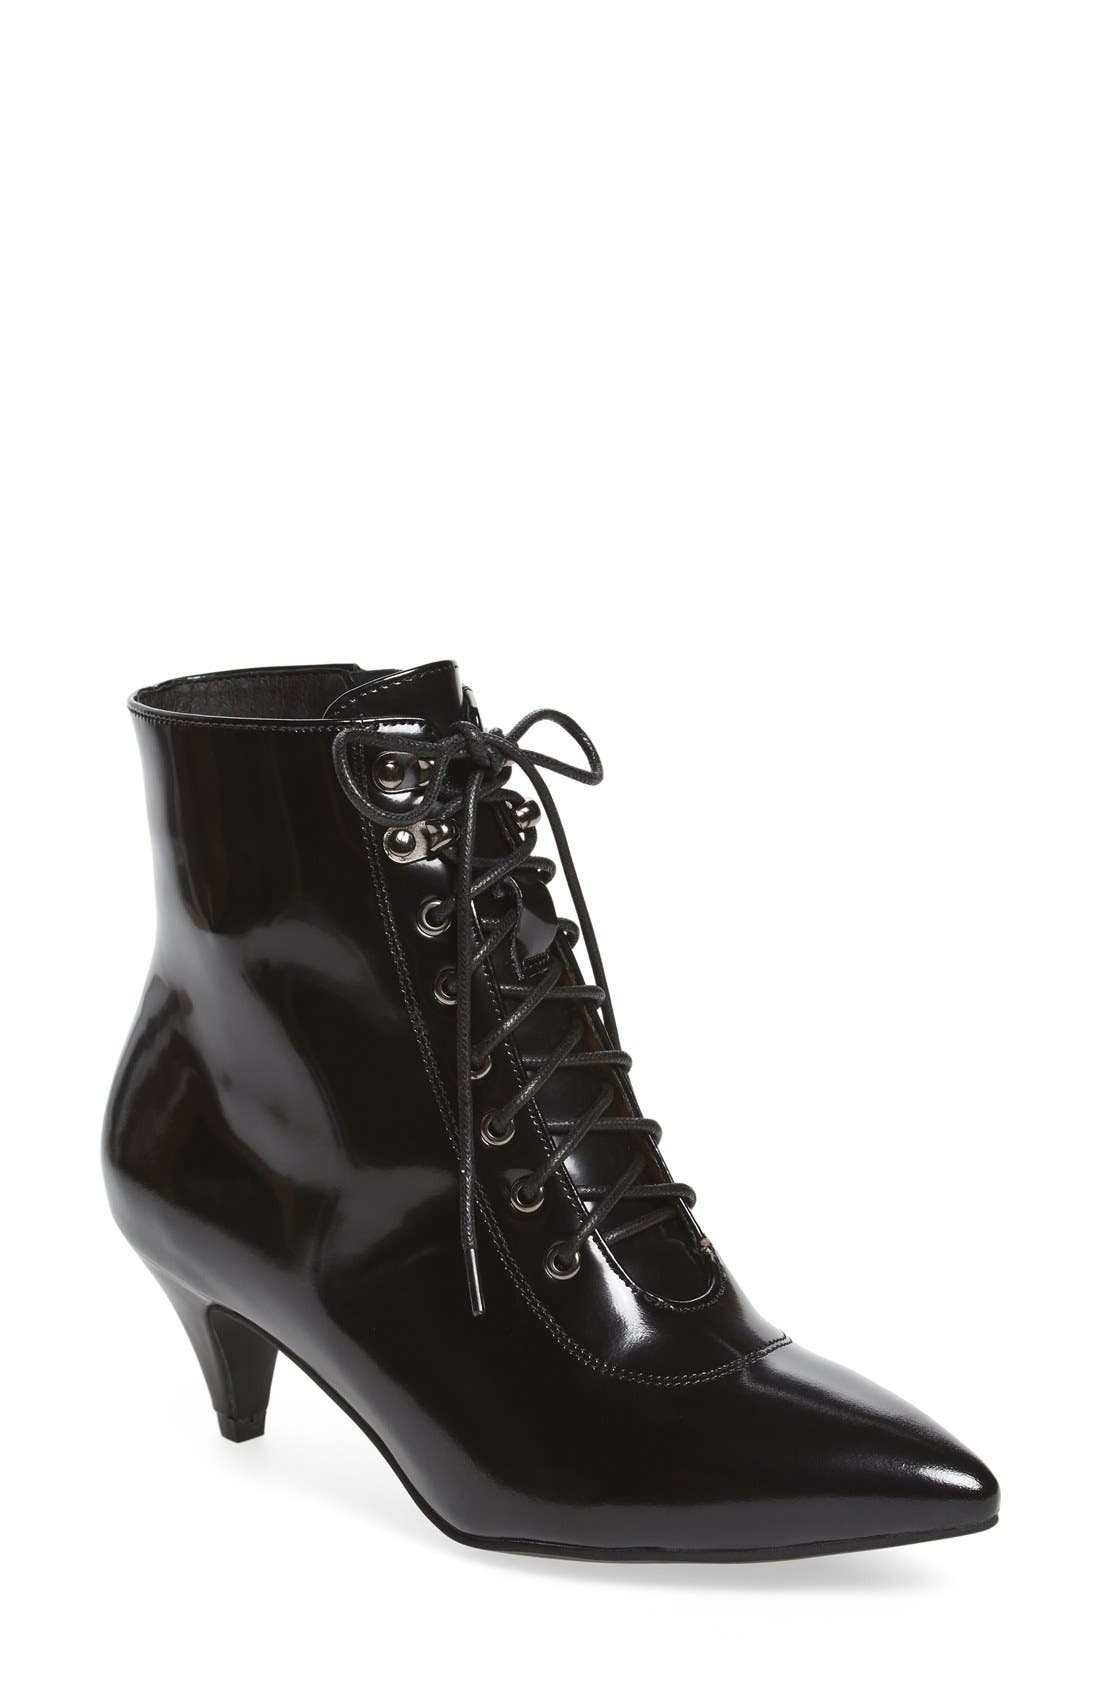 Alternate Image 1 Selected - Jeffrey Campbell 'Nessarose' Lace-Up Bootie (Women)